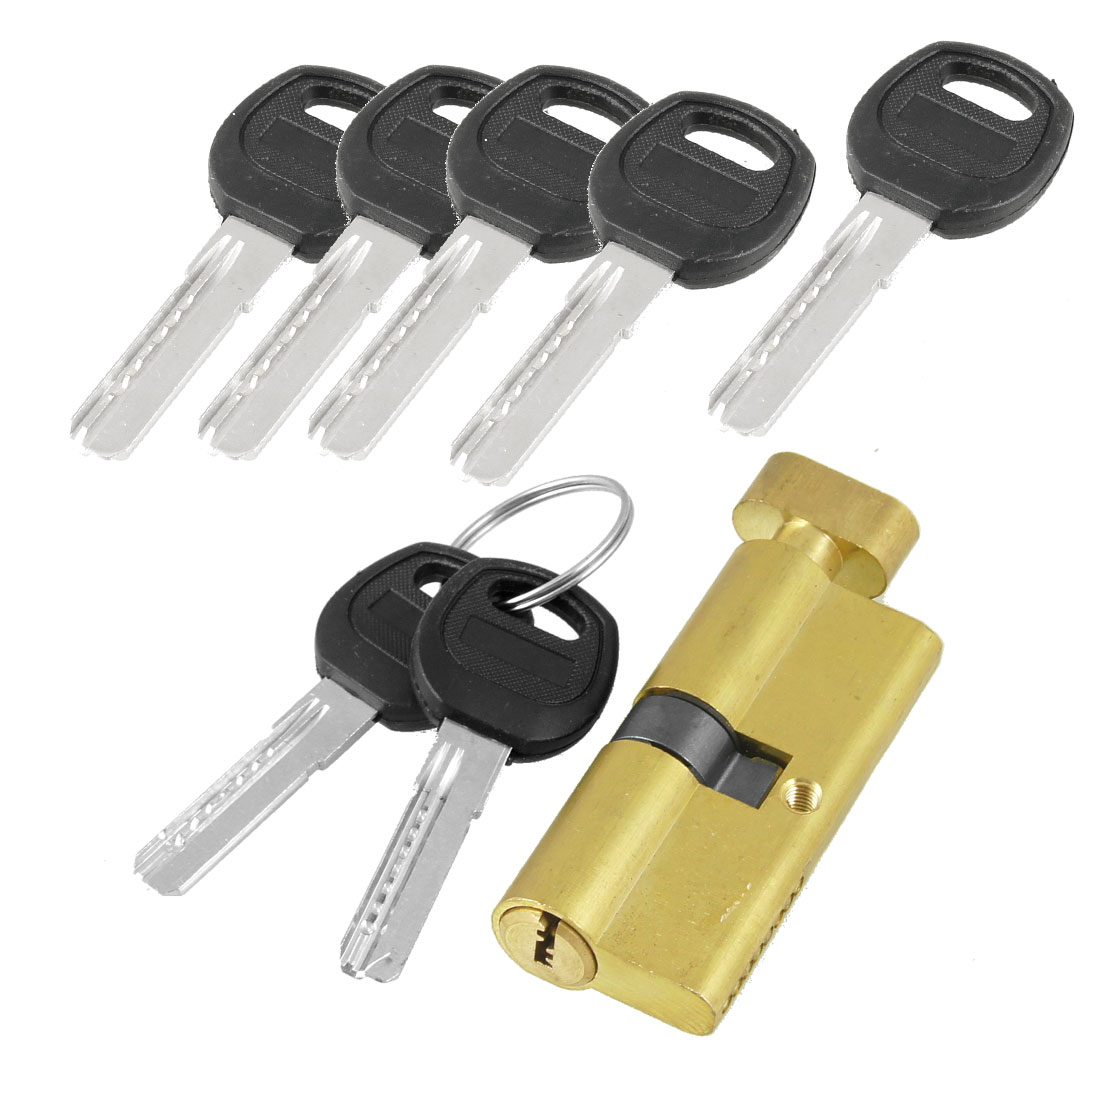 Home Gold Tone Metal Anti-theft Security Door Lock Core w 7 Keys